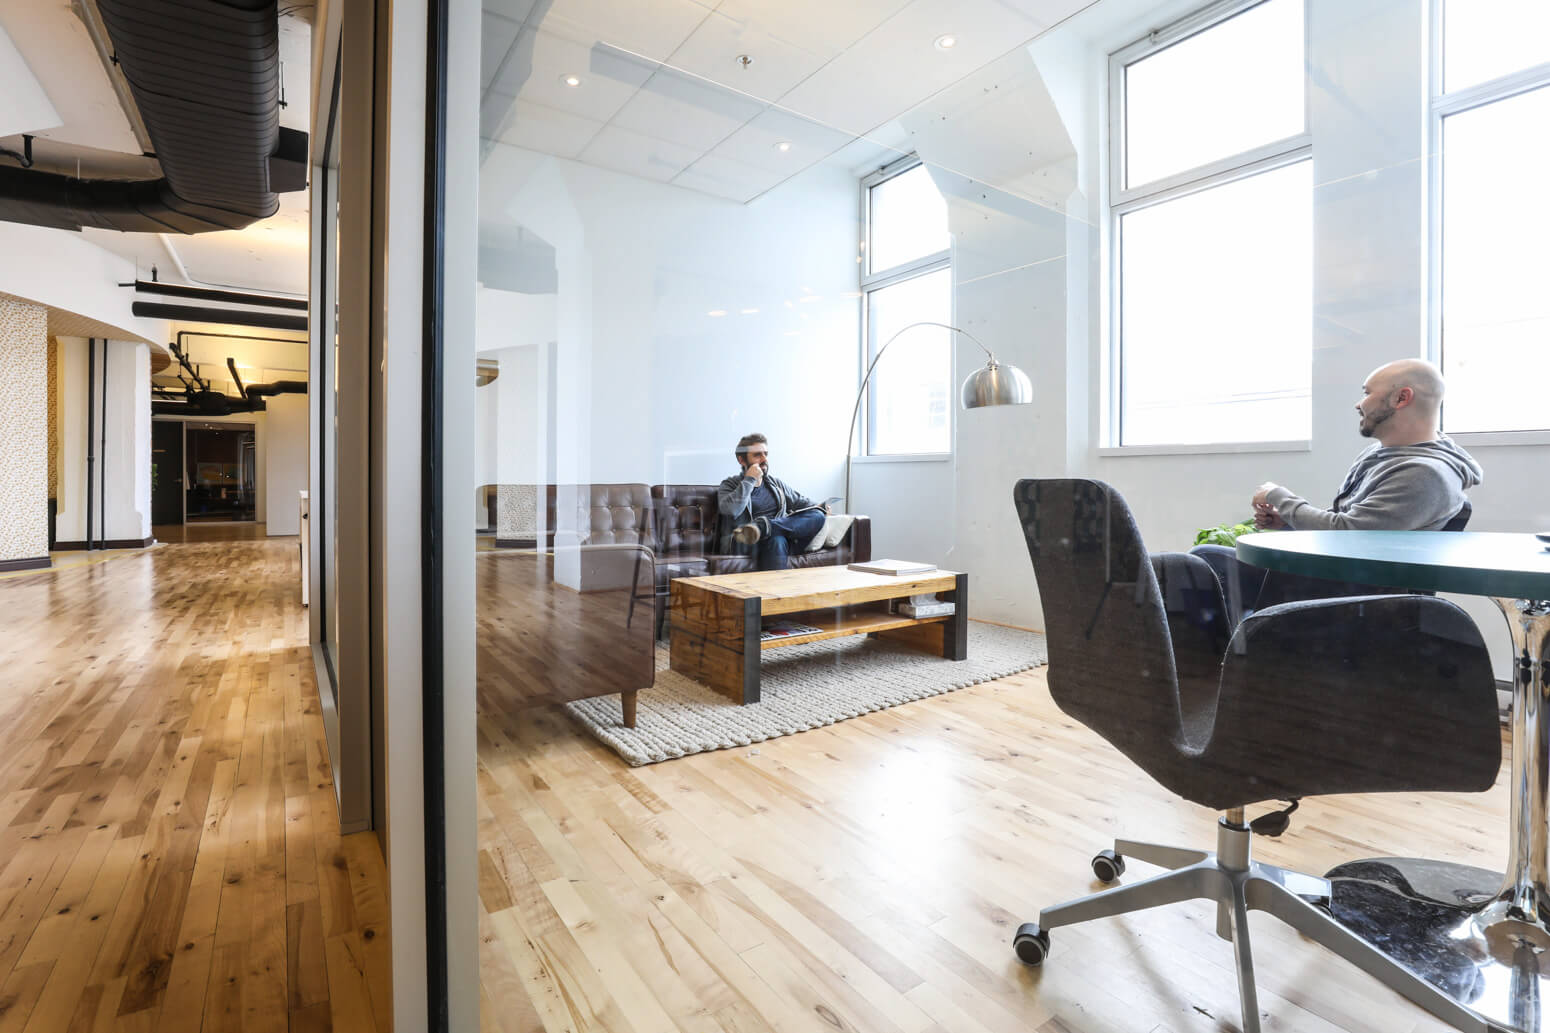 Shutterstock Montreal Office Killer Spaces-6